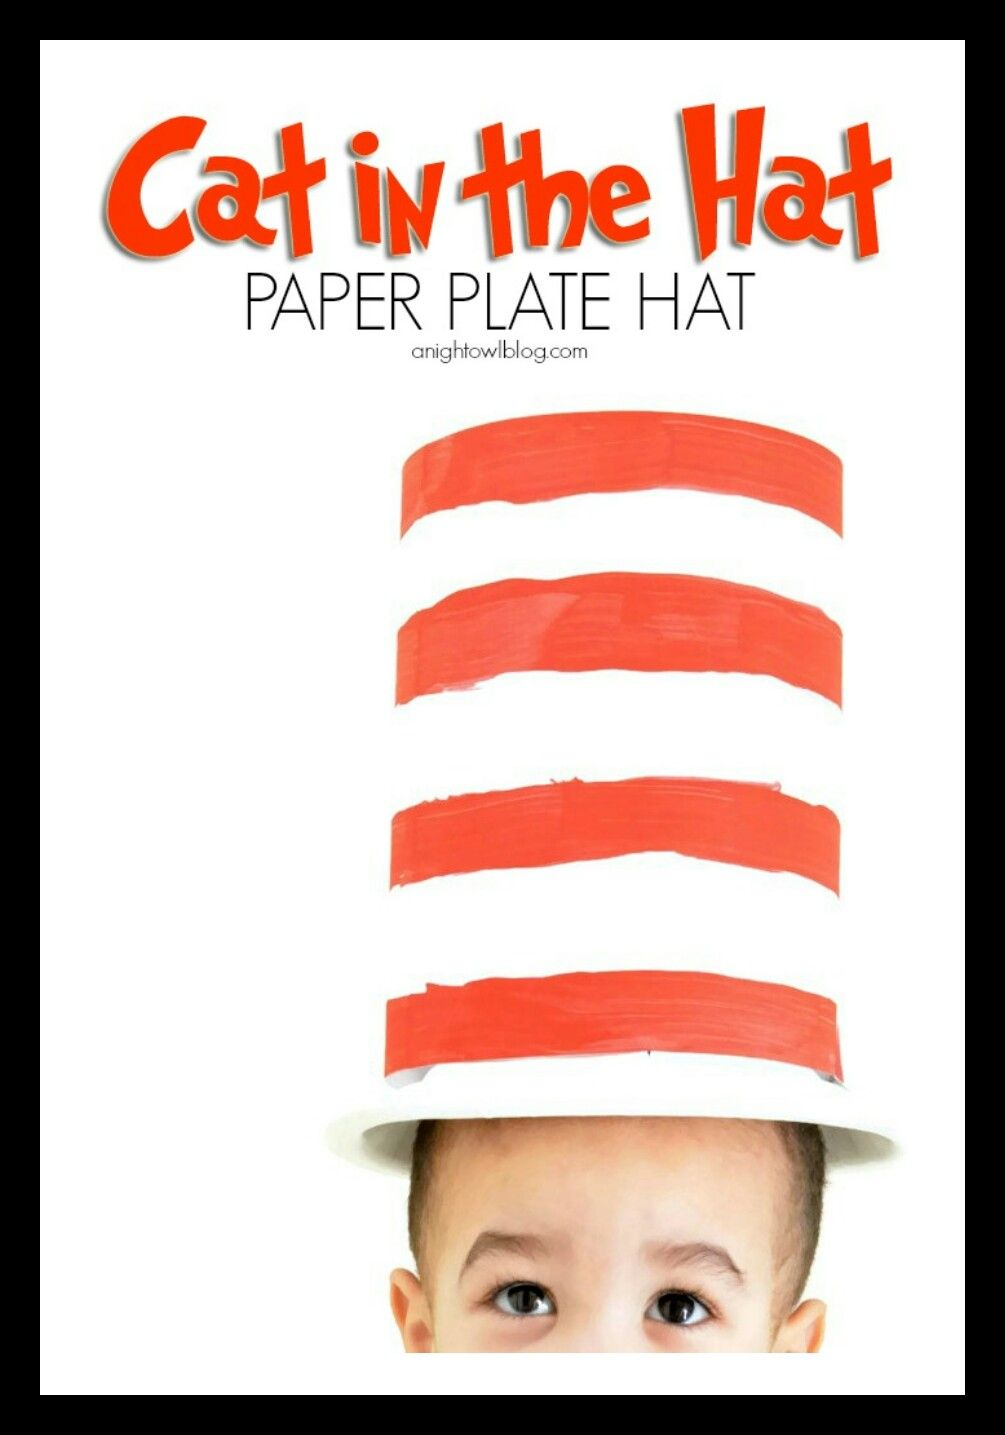 Seussu0027 birthday in style with this adorable and EASY Cat in the Hat paper plate hat.  sc 1 st  Pinterest & Pin by Barbara Lazok-Montgomery on Dr Suess | Pinterest